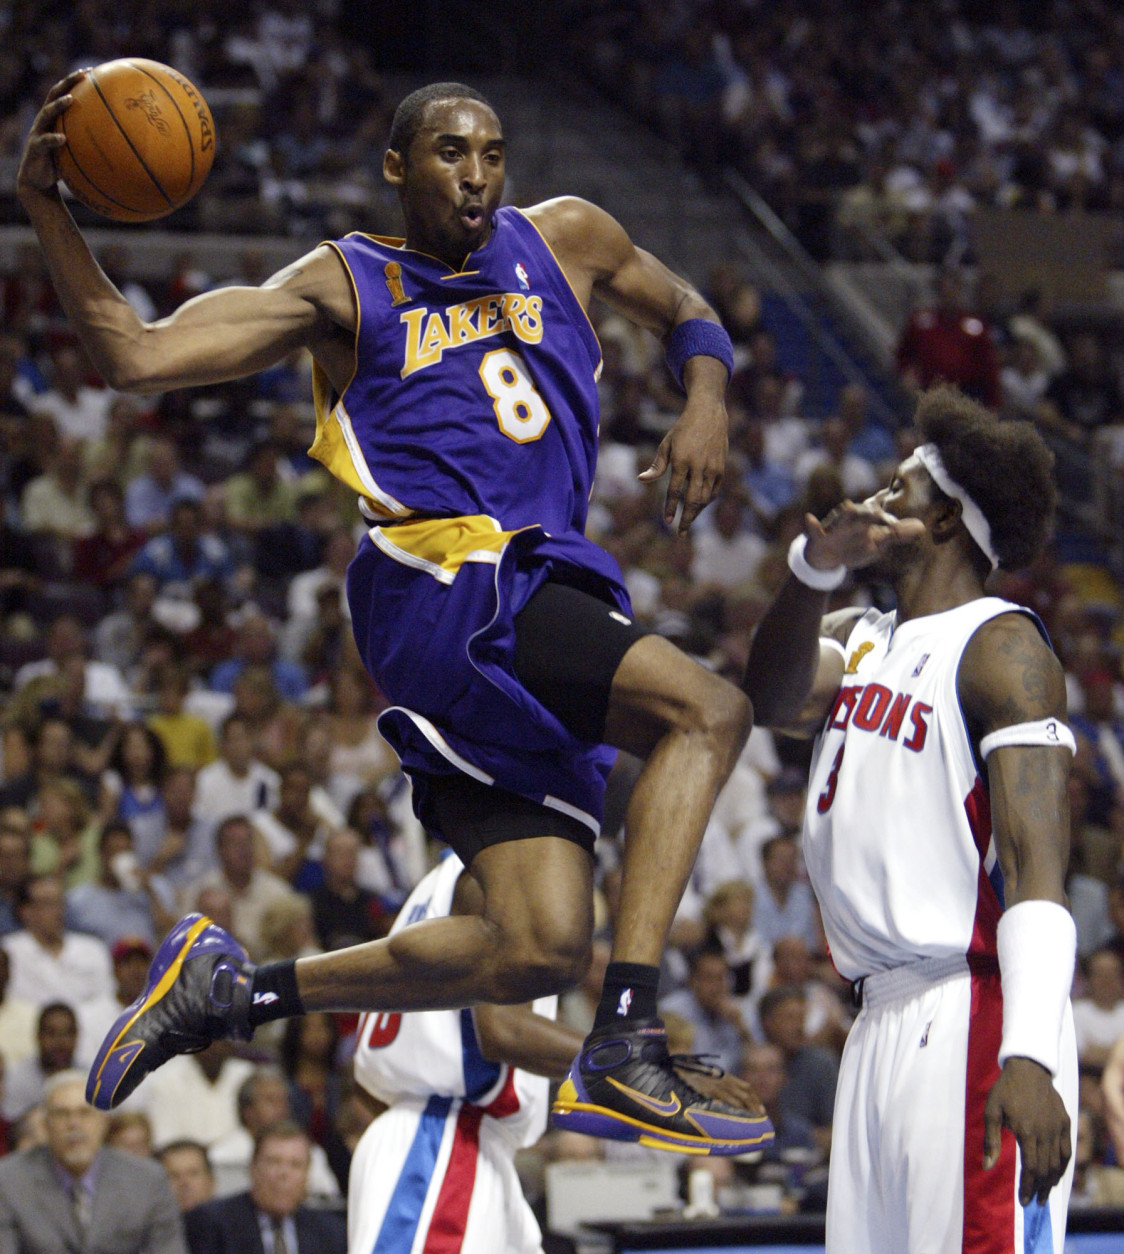 Los Angeles Lakers Kobe Bryant (8) goes by Detroit Pistons Ben Wallace (3) in the first half of  Game 5 of the NBA Finals in Auburn Hills, Mich. Tuesday night June 15, 2004. (AP Photo/ Paul Sancya )